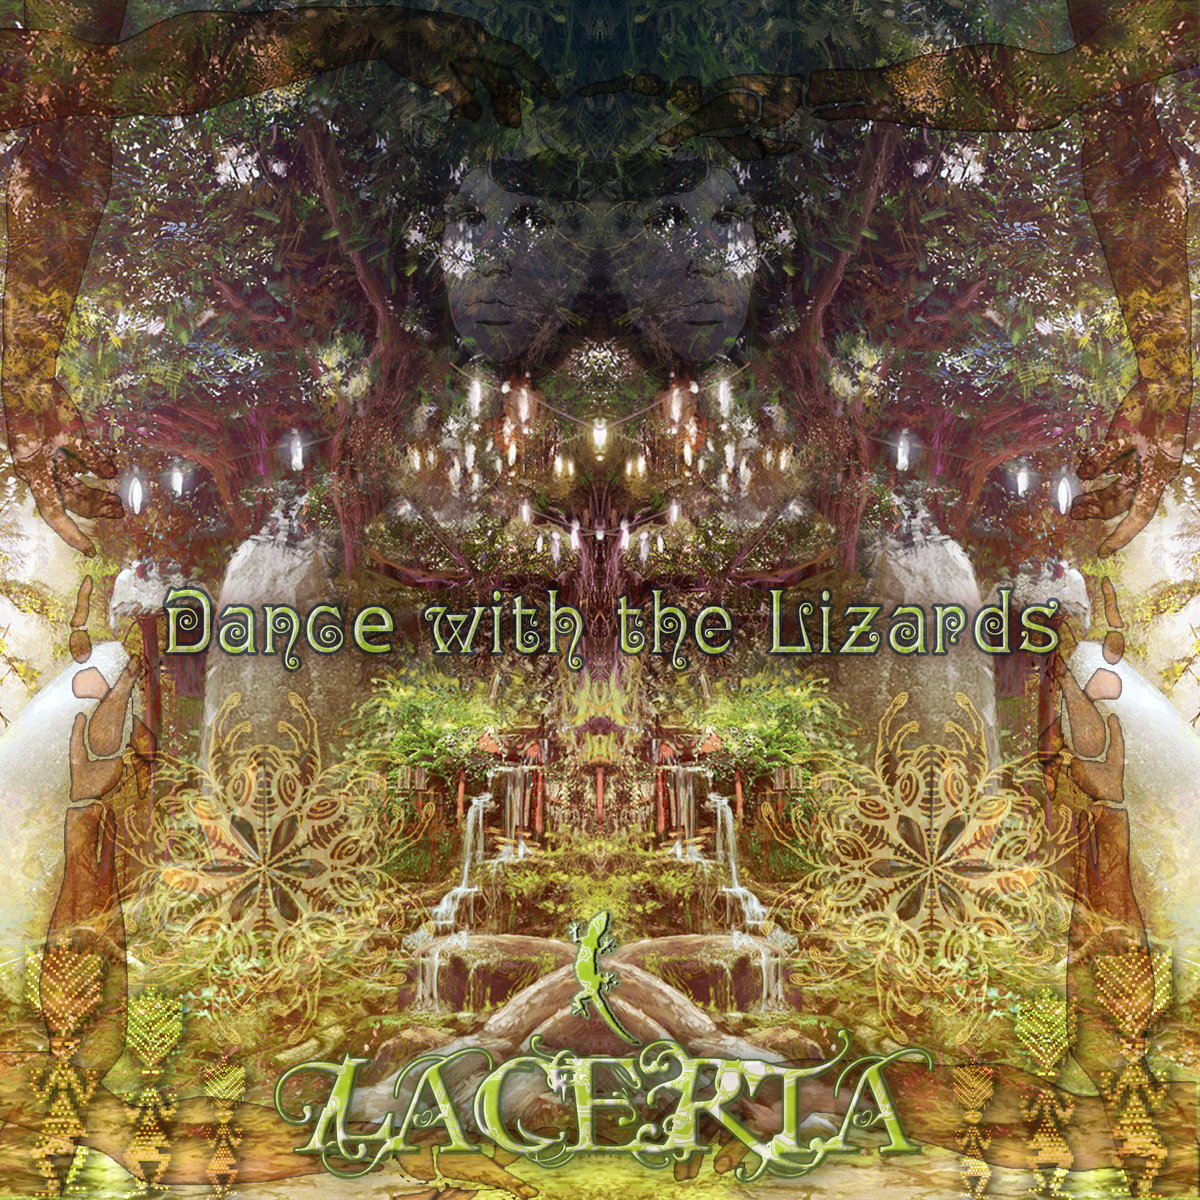 Lacerta - Dance With The Lizards